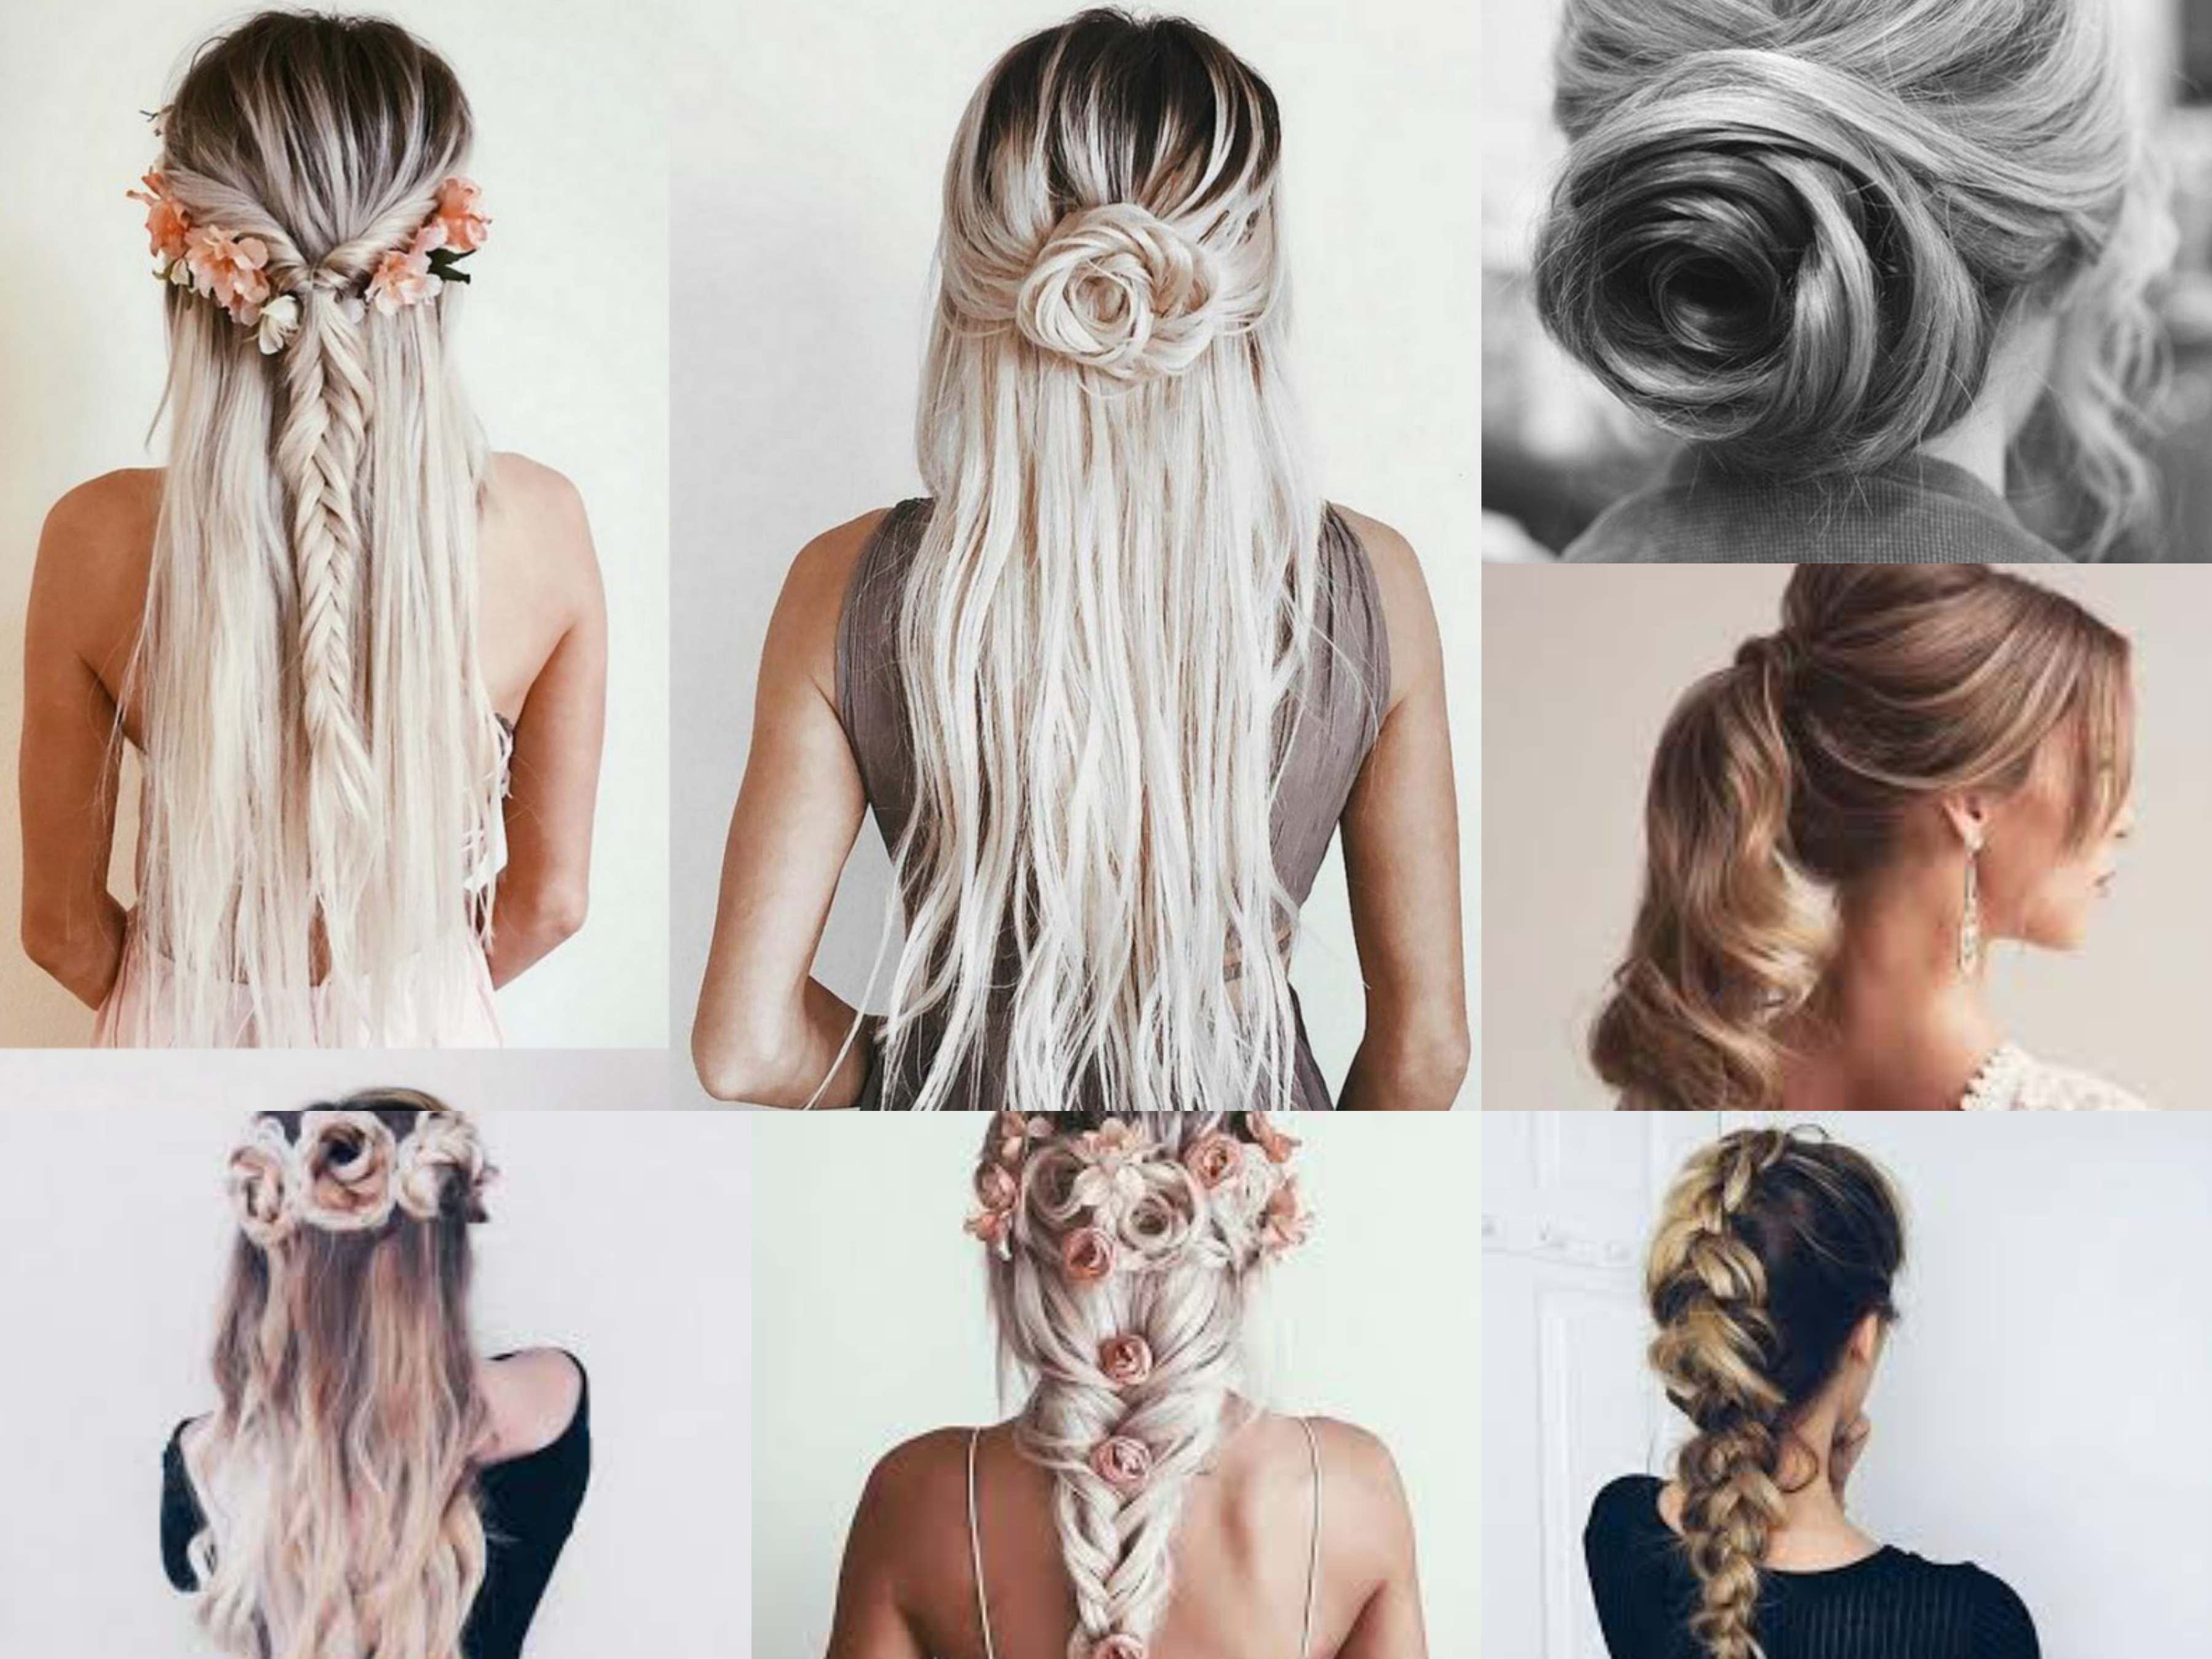 PROM HAIRSTYLE MIX INSPIRATION